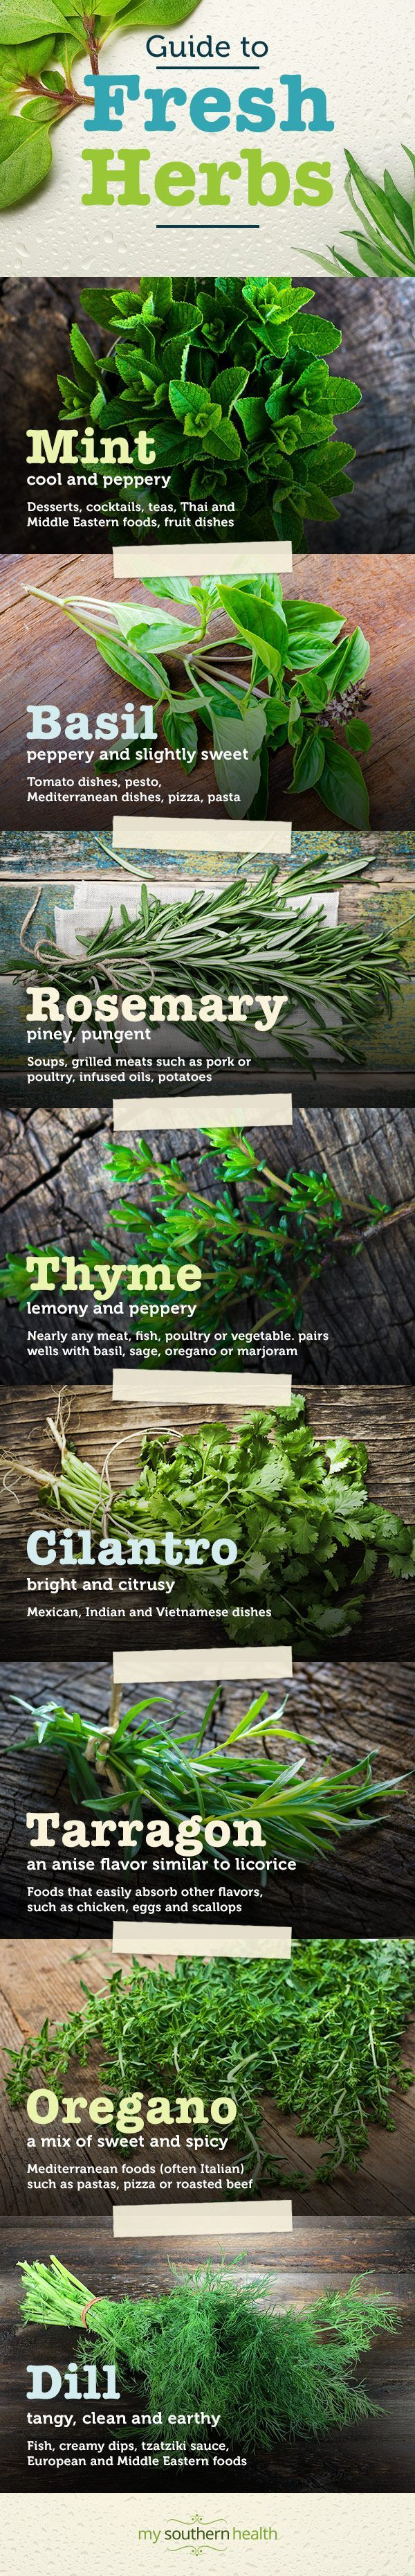 Transform your favorite recipes by adding fresh herbs. Learn about herbs and explore ideas for using them at My Southern Health.